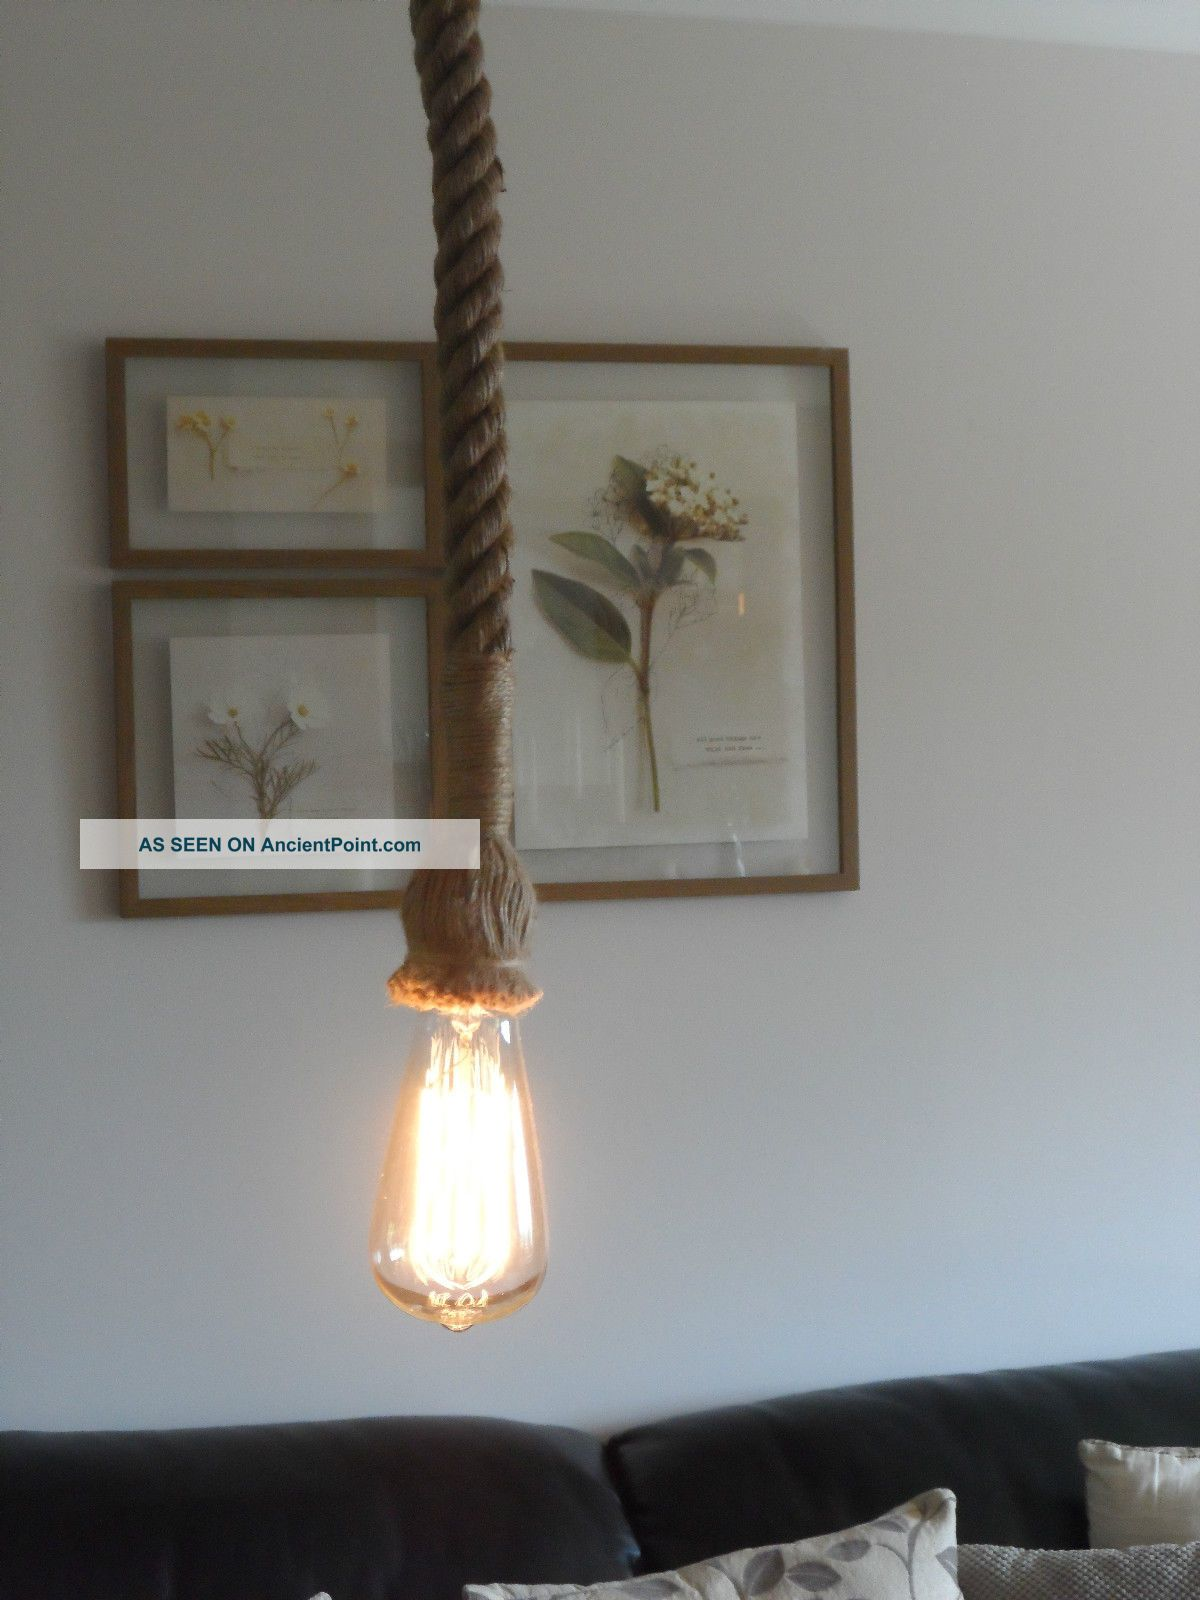 1 Mtr Jute Rope Covered 2 Core Light Flex Wire Cord Hanging Lamp Pendant Ceiling Reproduction Lamps photo